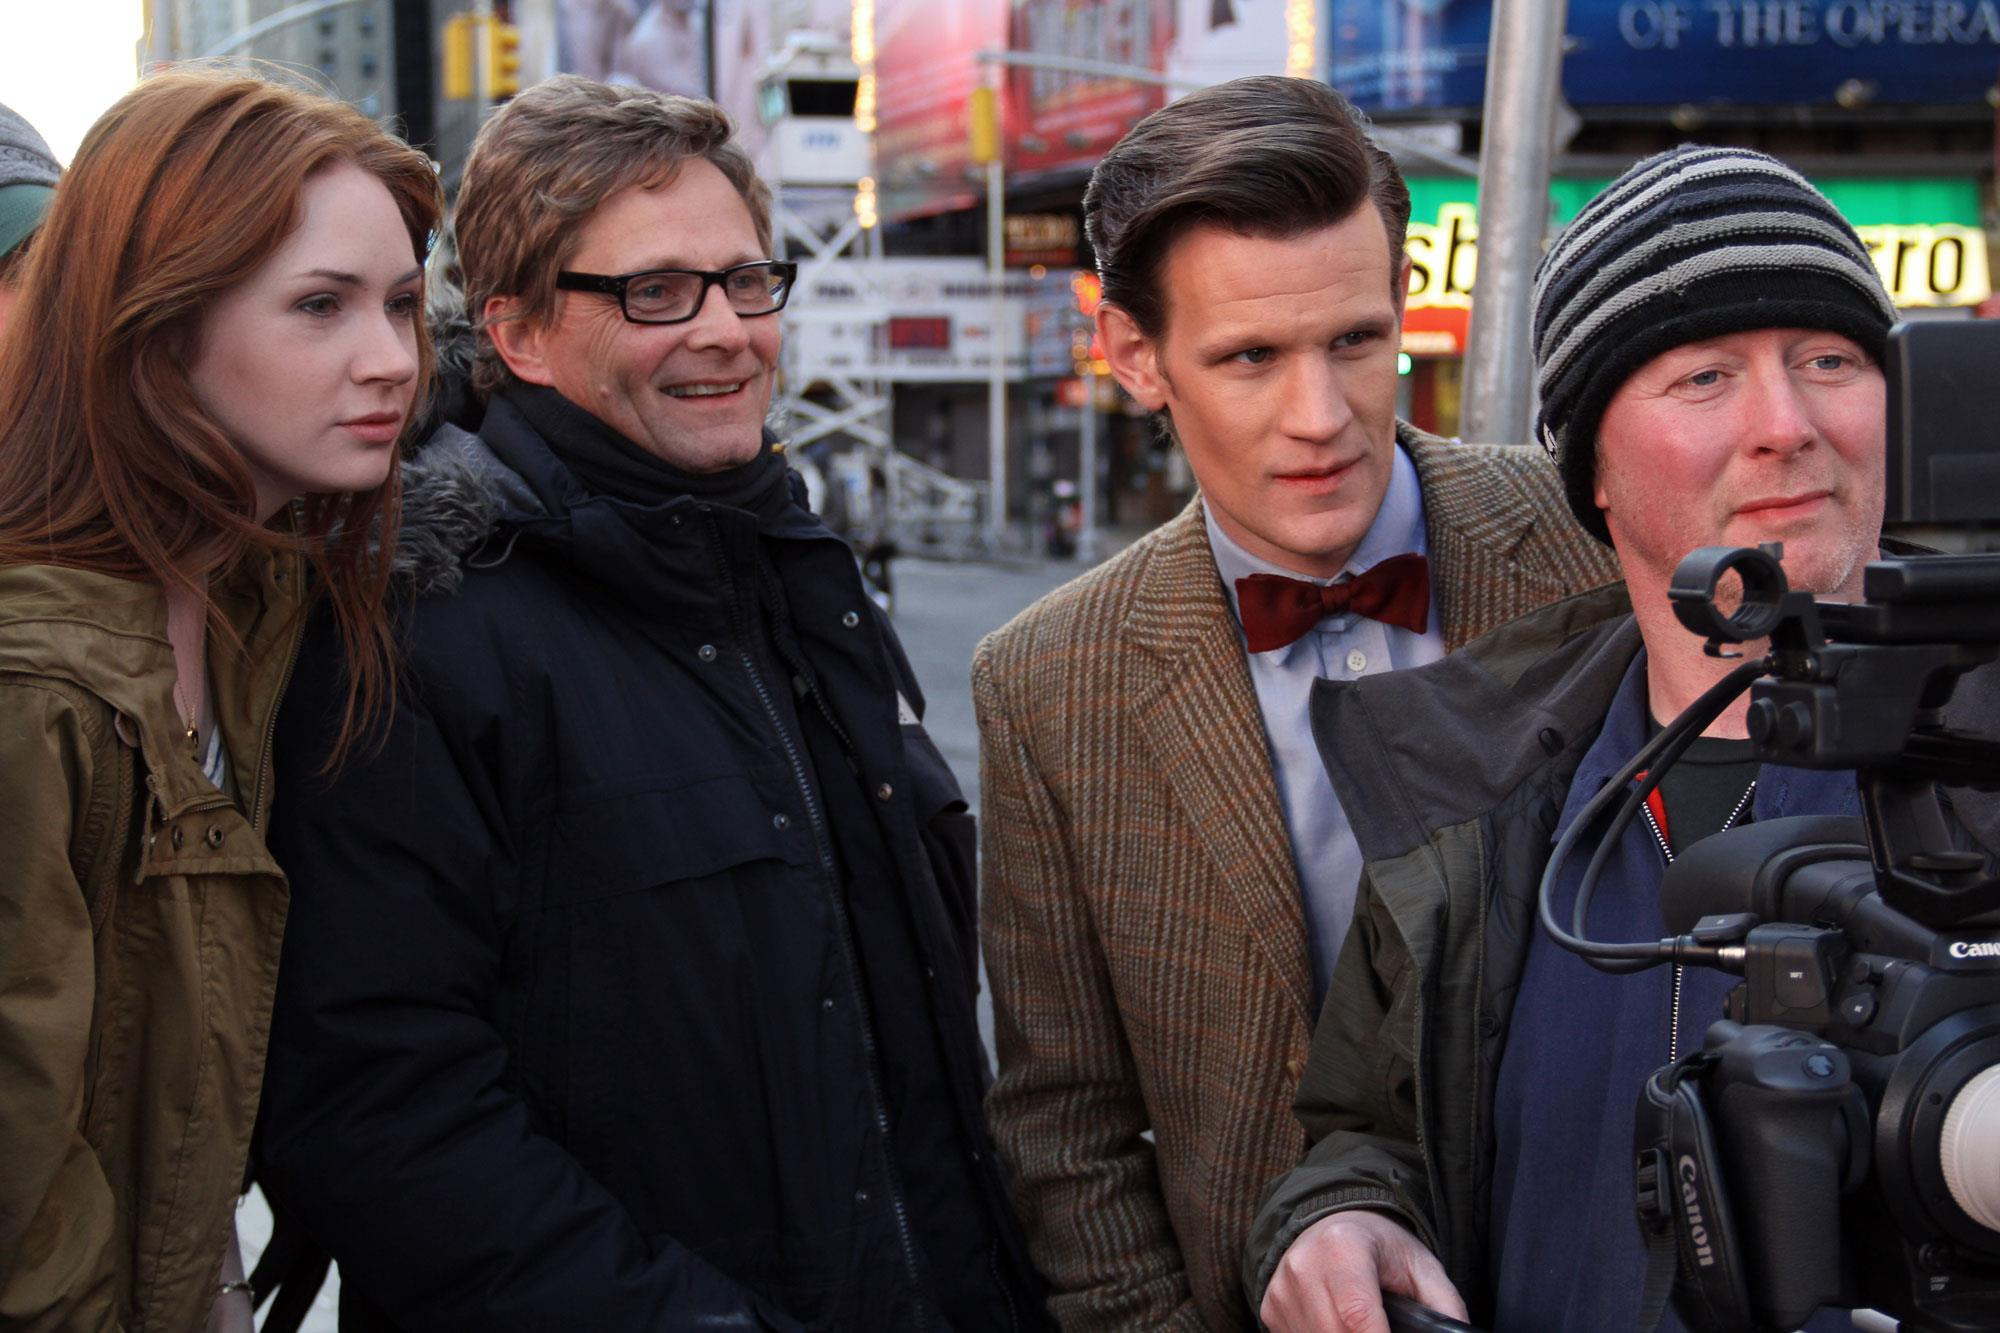 Matt Smith and Karen Gillan get in on the action in Times Square, New York City while filming an upcoming episode of 'Doctor Who.'